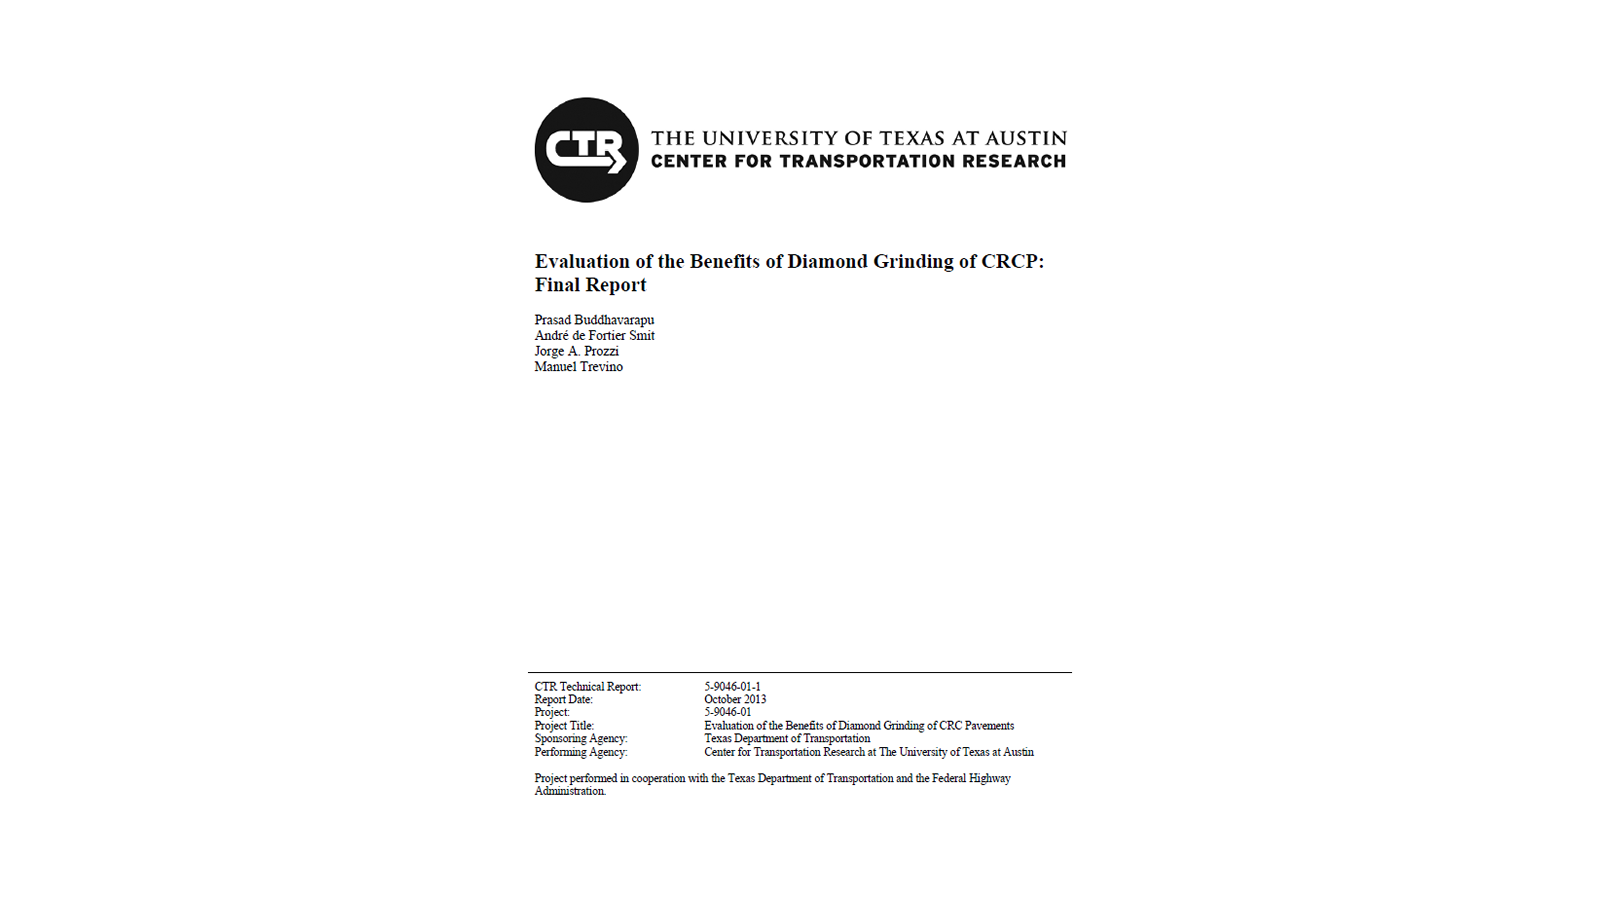 Evaluation of the Benefits of Diamond Grinding of CRCP: Final Report (FHWA/TX-13/5-9046-01-1)